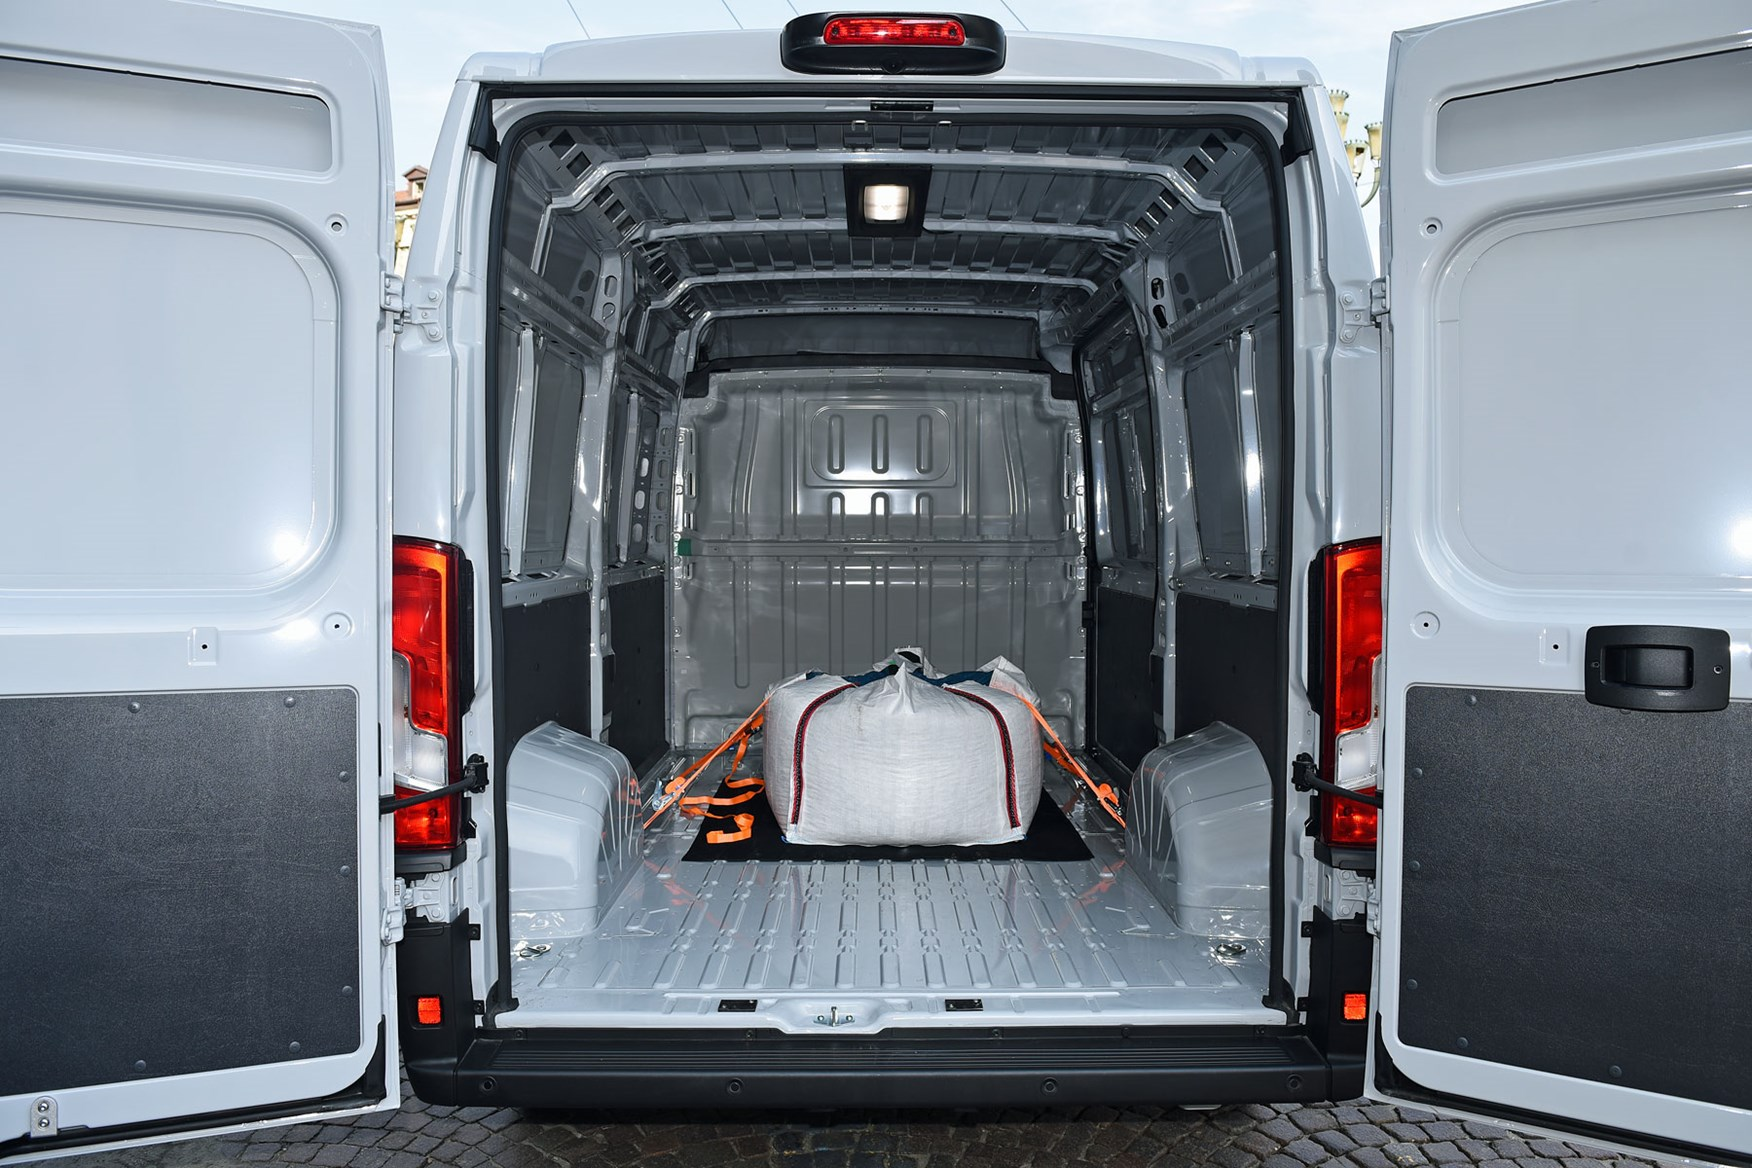 Fiat Ducato Van Dimensions 2011 On Capacity Payload Volume Towing Parkers